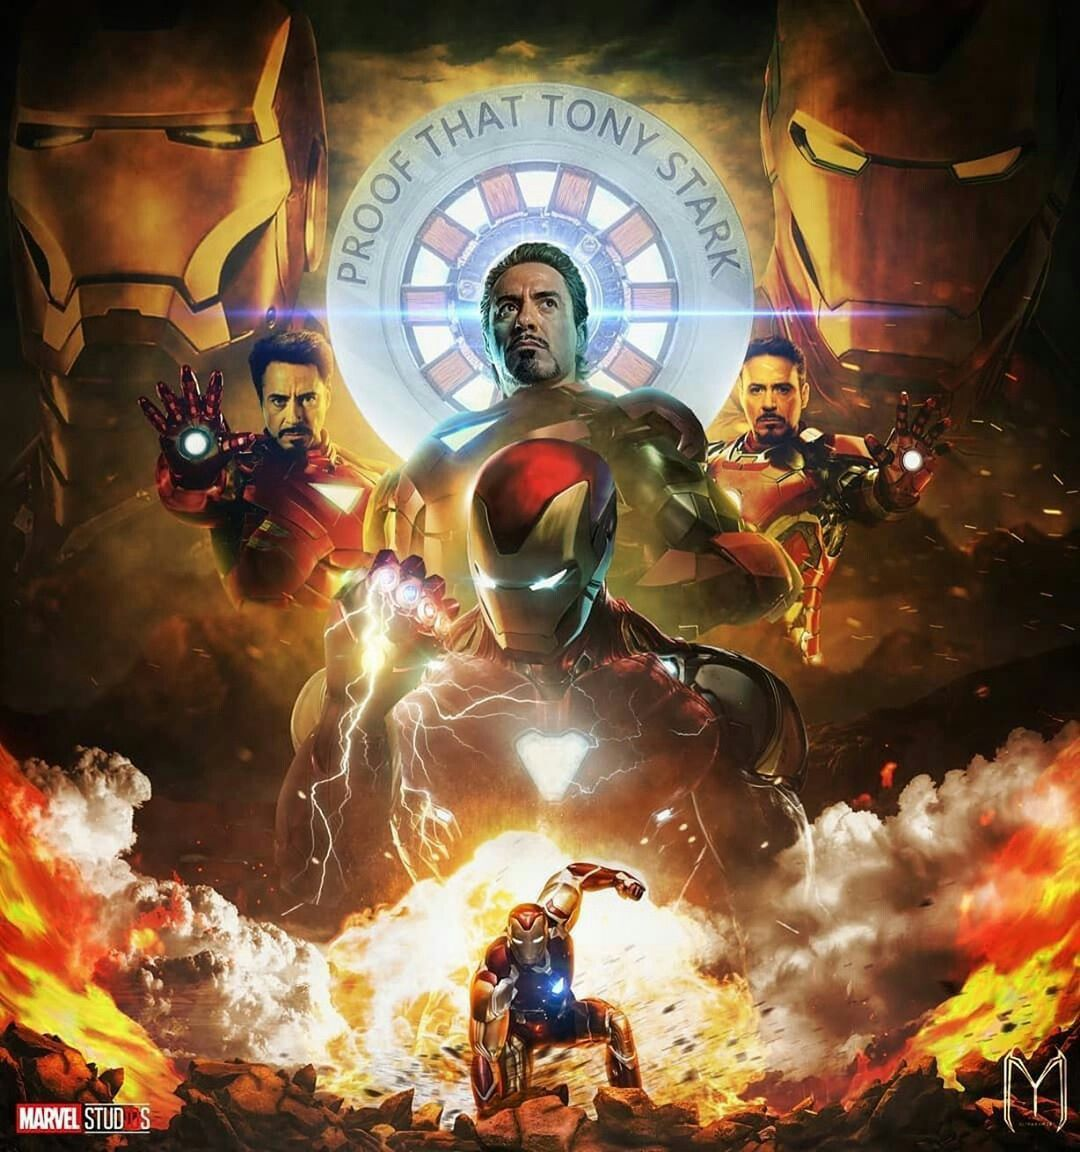 Pin By Coloring On Marvel Marvel Iron Man Marvel Marvel Heroes